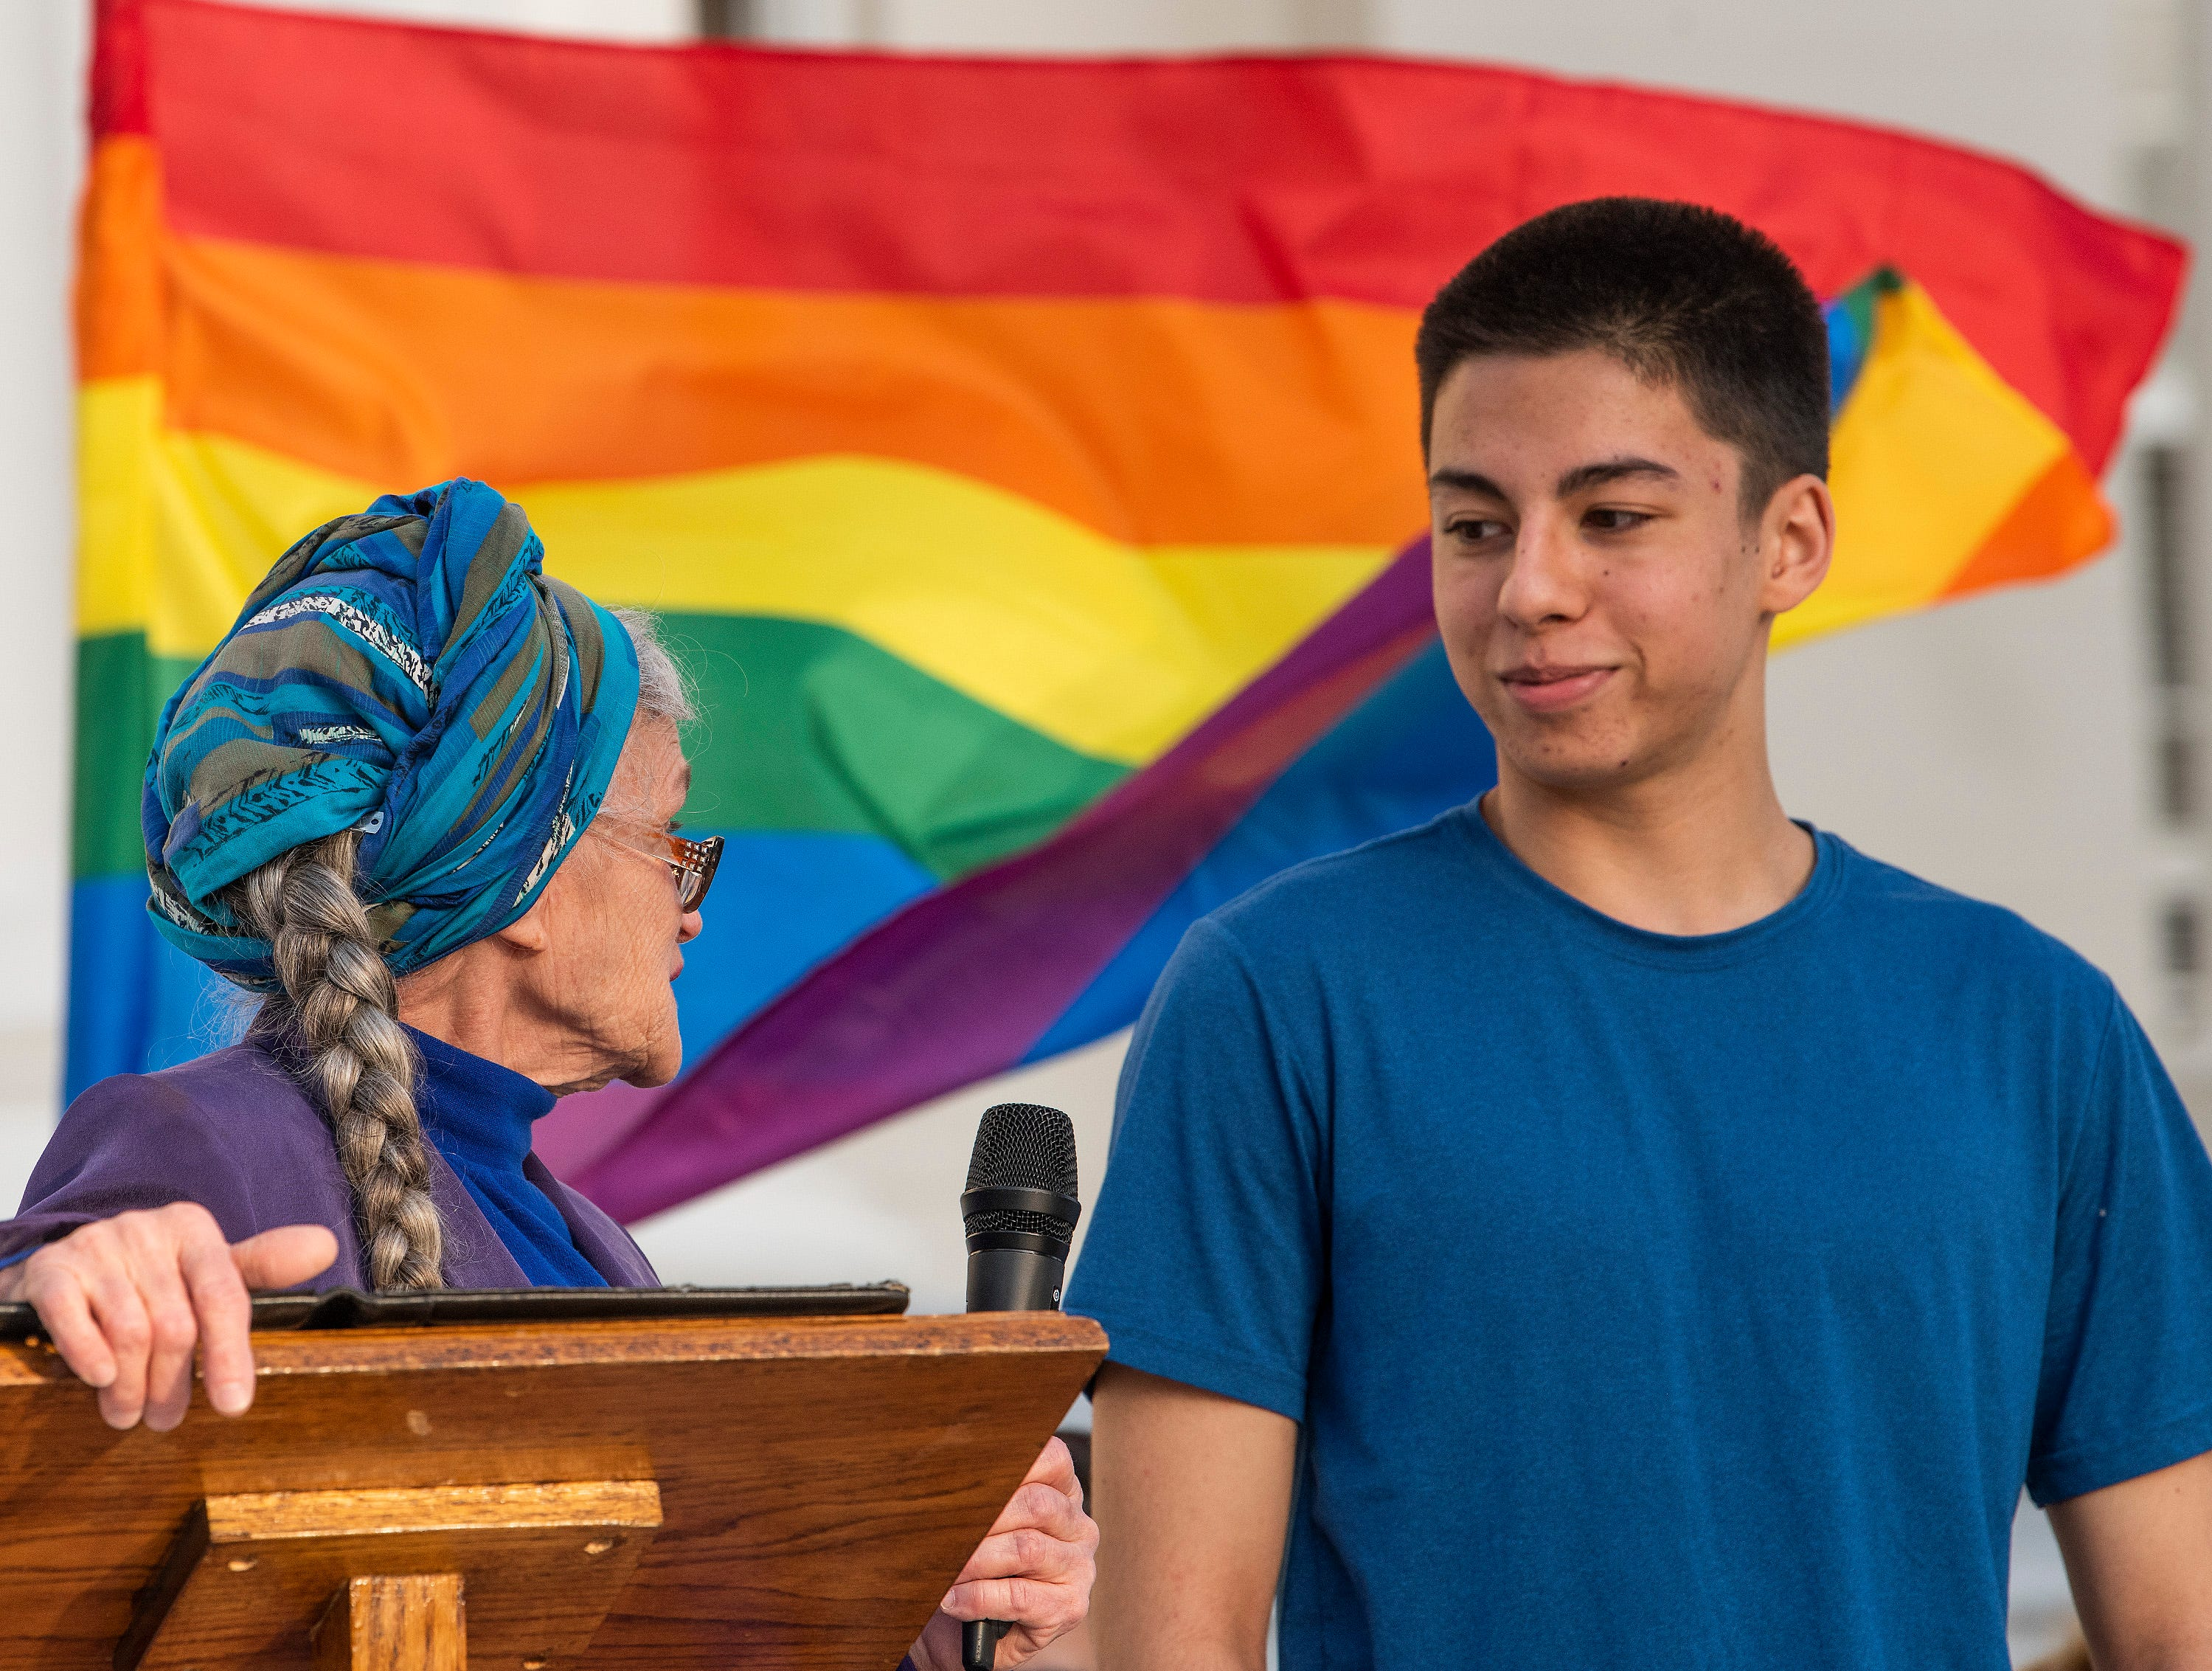 Meta Ellis presents the Stephen Light youth Activist Award  to Eric Samelo, who established the LGBT student group Metamorphosis at LAMP, during the Vigil for Victims of Hate and Violence held on the state capitol steps in Montgomery, Ala., on Saturday February 16, 2019.